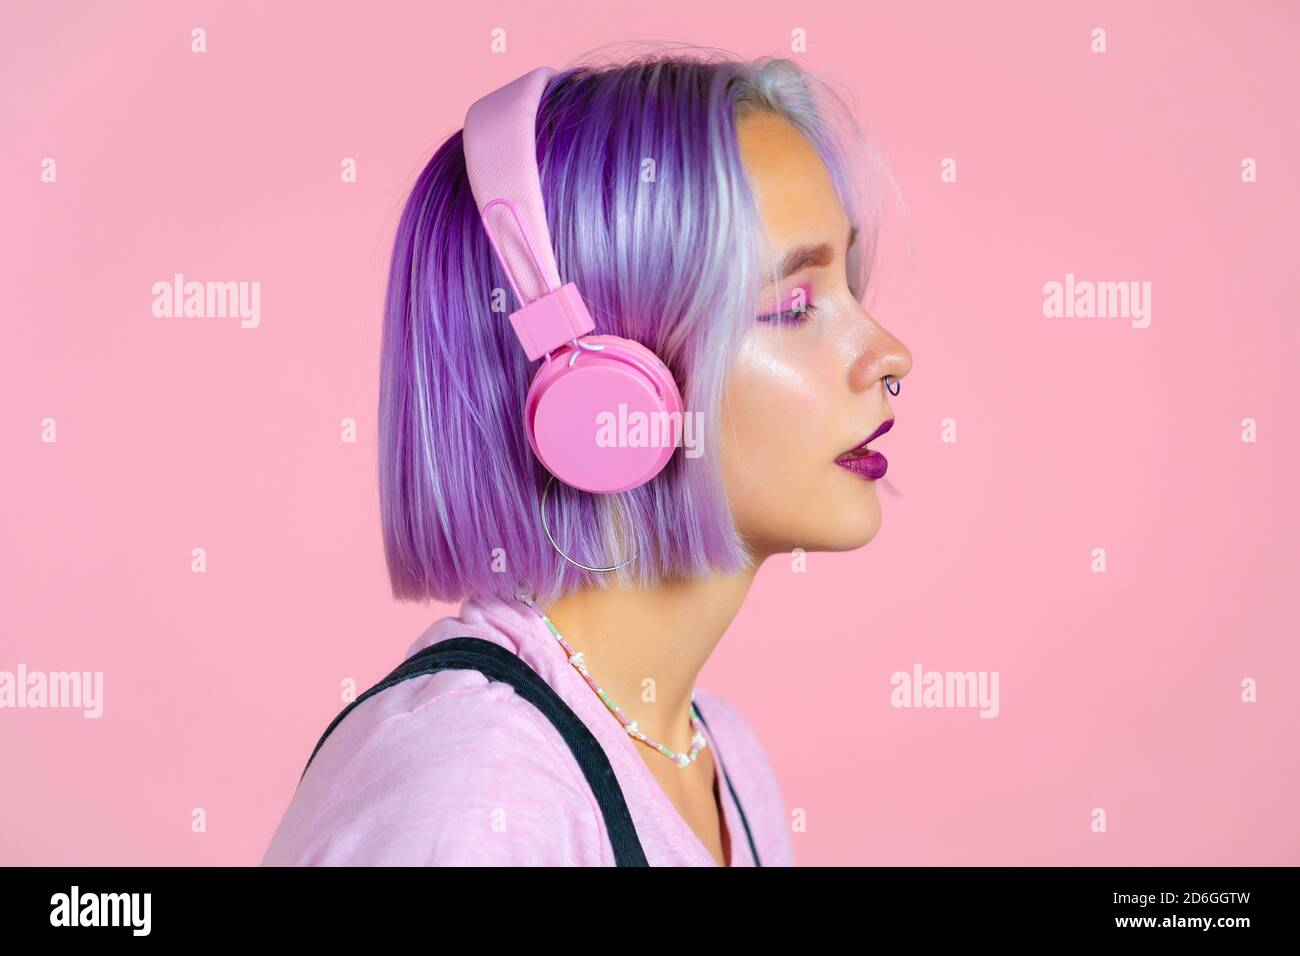 Close-up portrait of pretty girl with dyed violet hair listening to music, smiling, dancing in headphones in studio against pink background. Music Stock Photo